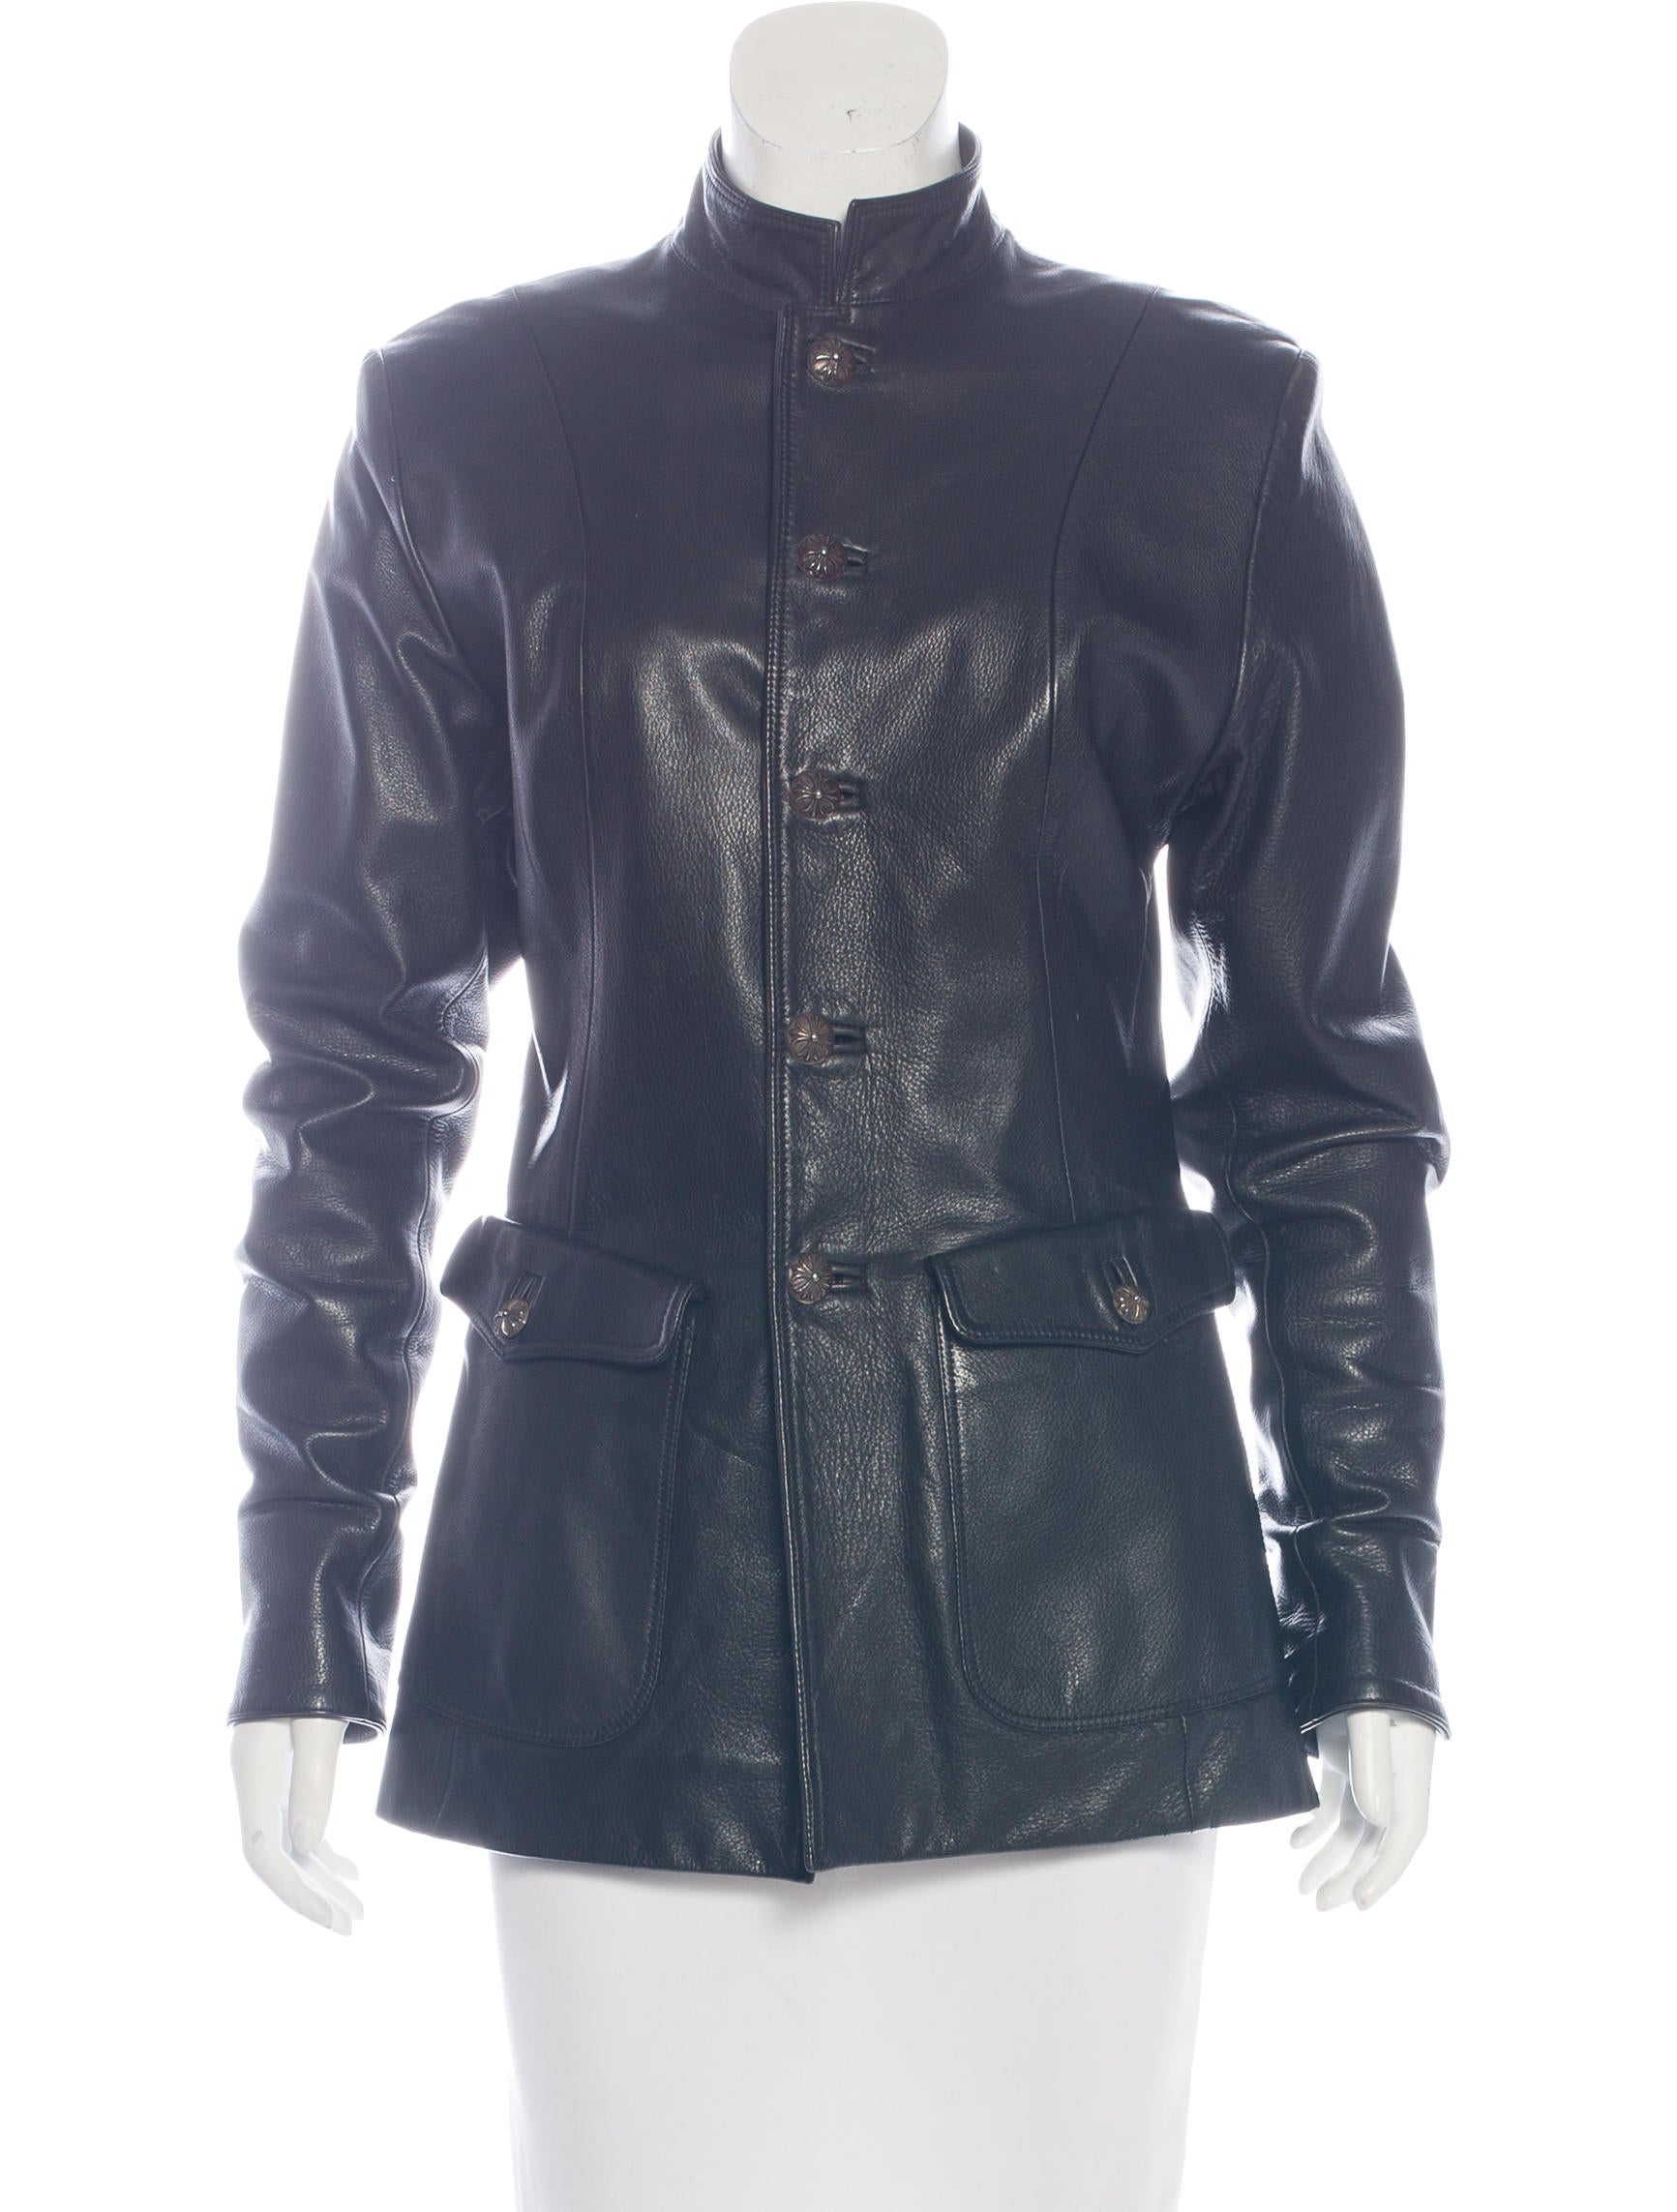 Chrome Hearts Leather Button-Up Jacket - Clothing ...